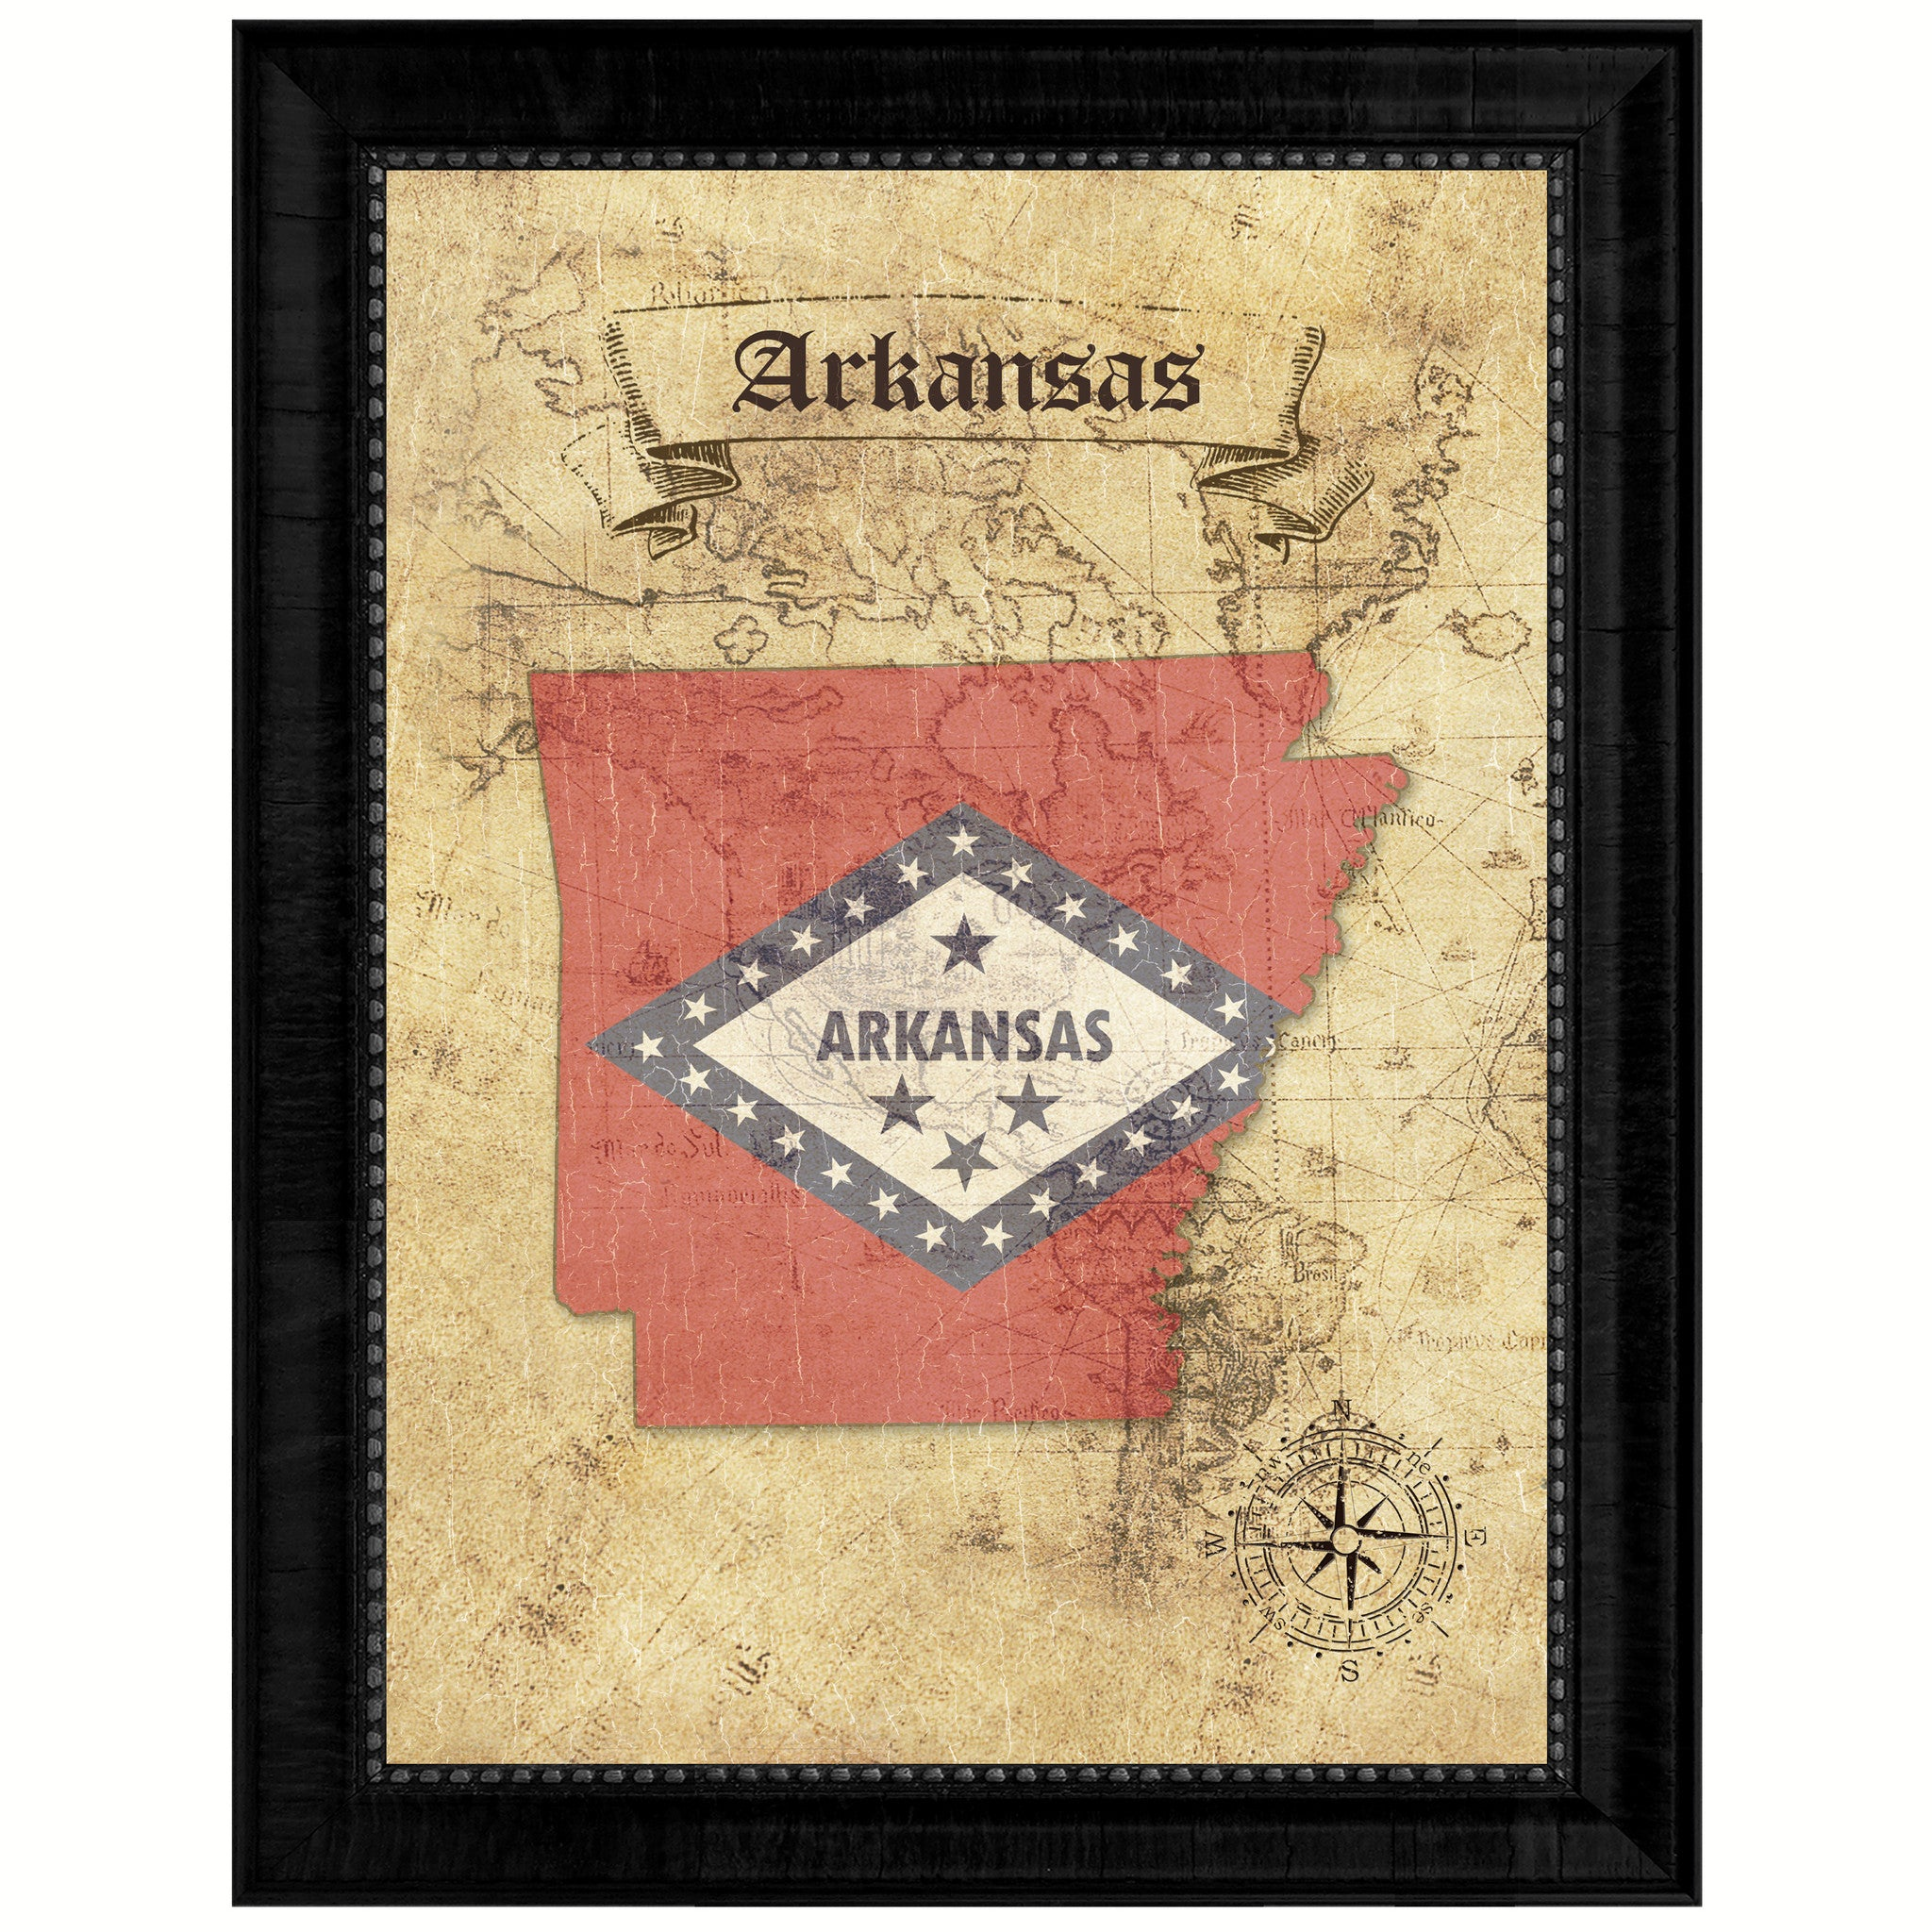 Arkansas State Vintage Map Gifts Home Decor Wall Art Office Decoration